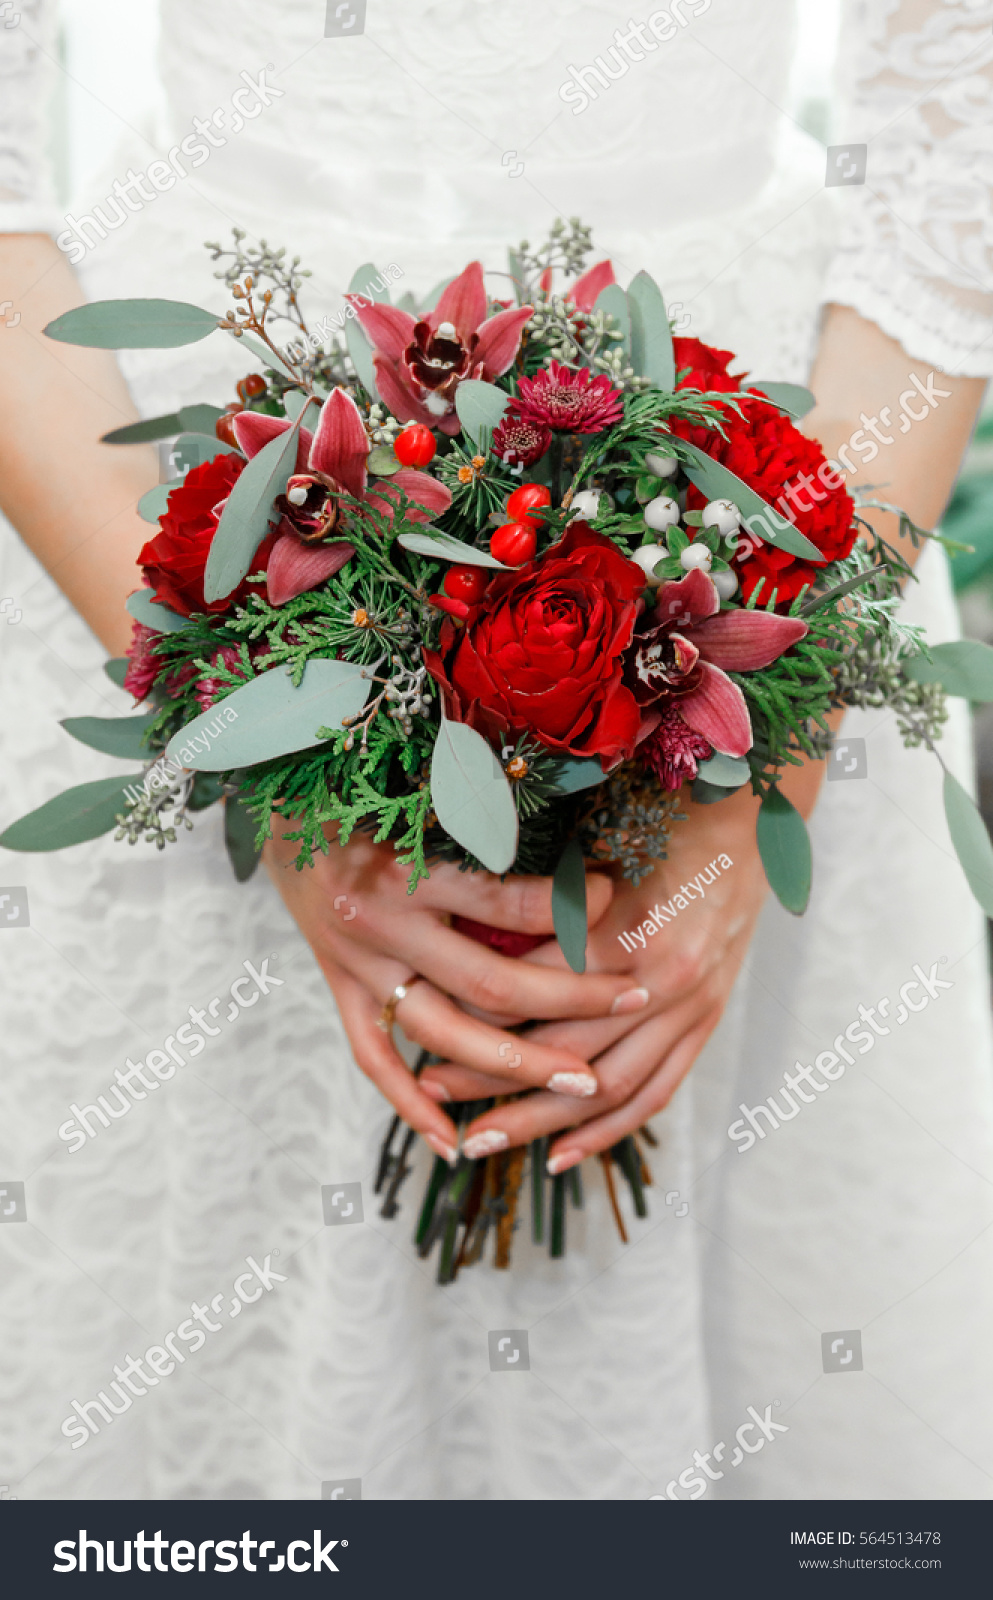 Brides bouquet real flowers bride bridal stock photo edit now brides bouquet real flowers of the bride bridal bouquet wedding decoration wedding izmirmasajfo